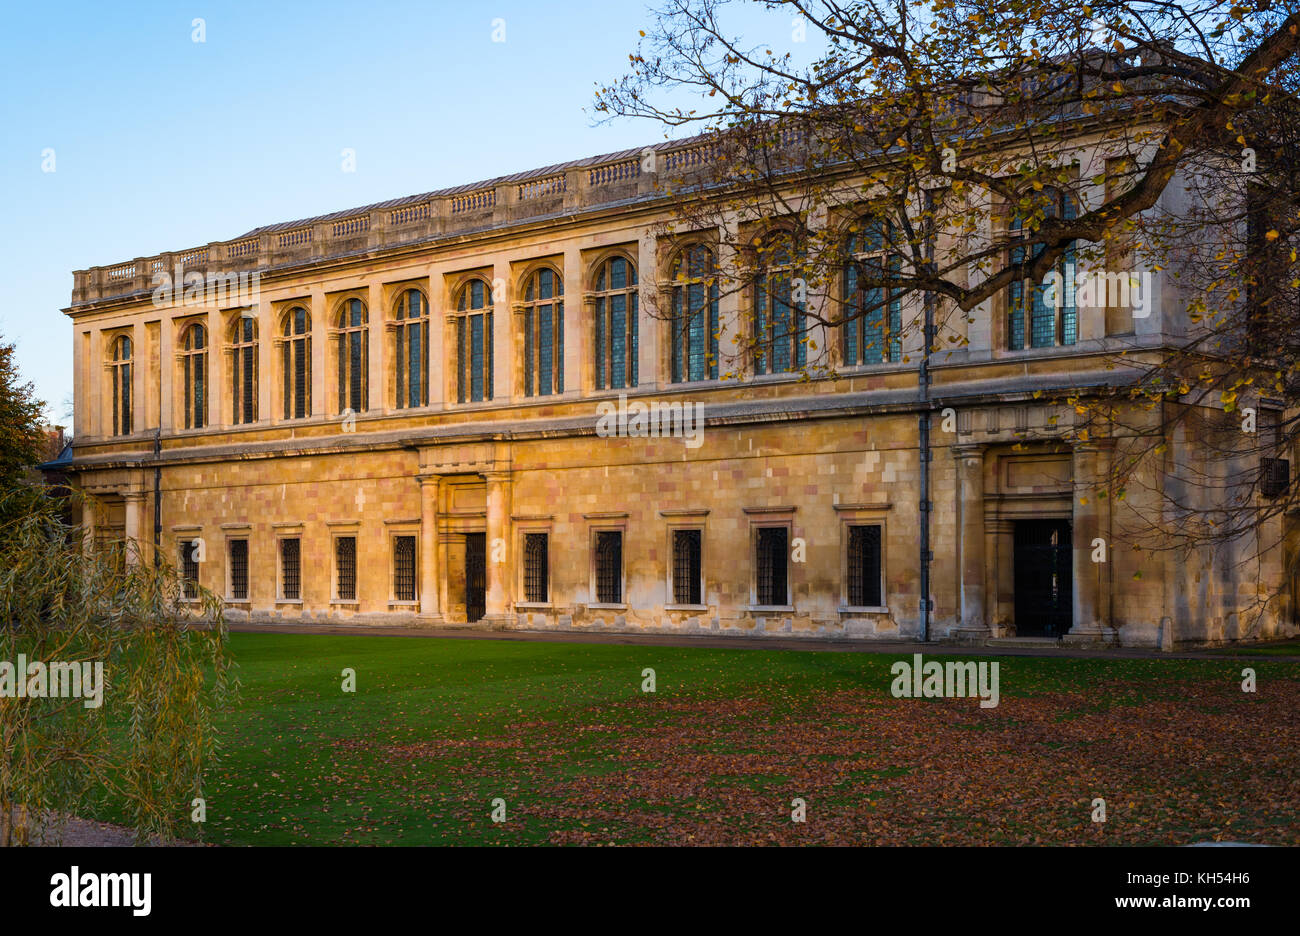 Scenic view of the Wren Library at sunset, Trinity College, Cambridge University; Cambridgeshire, UK. - Stock Image